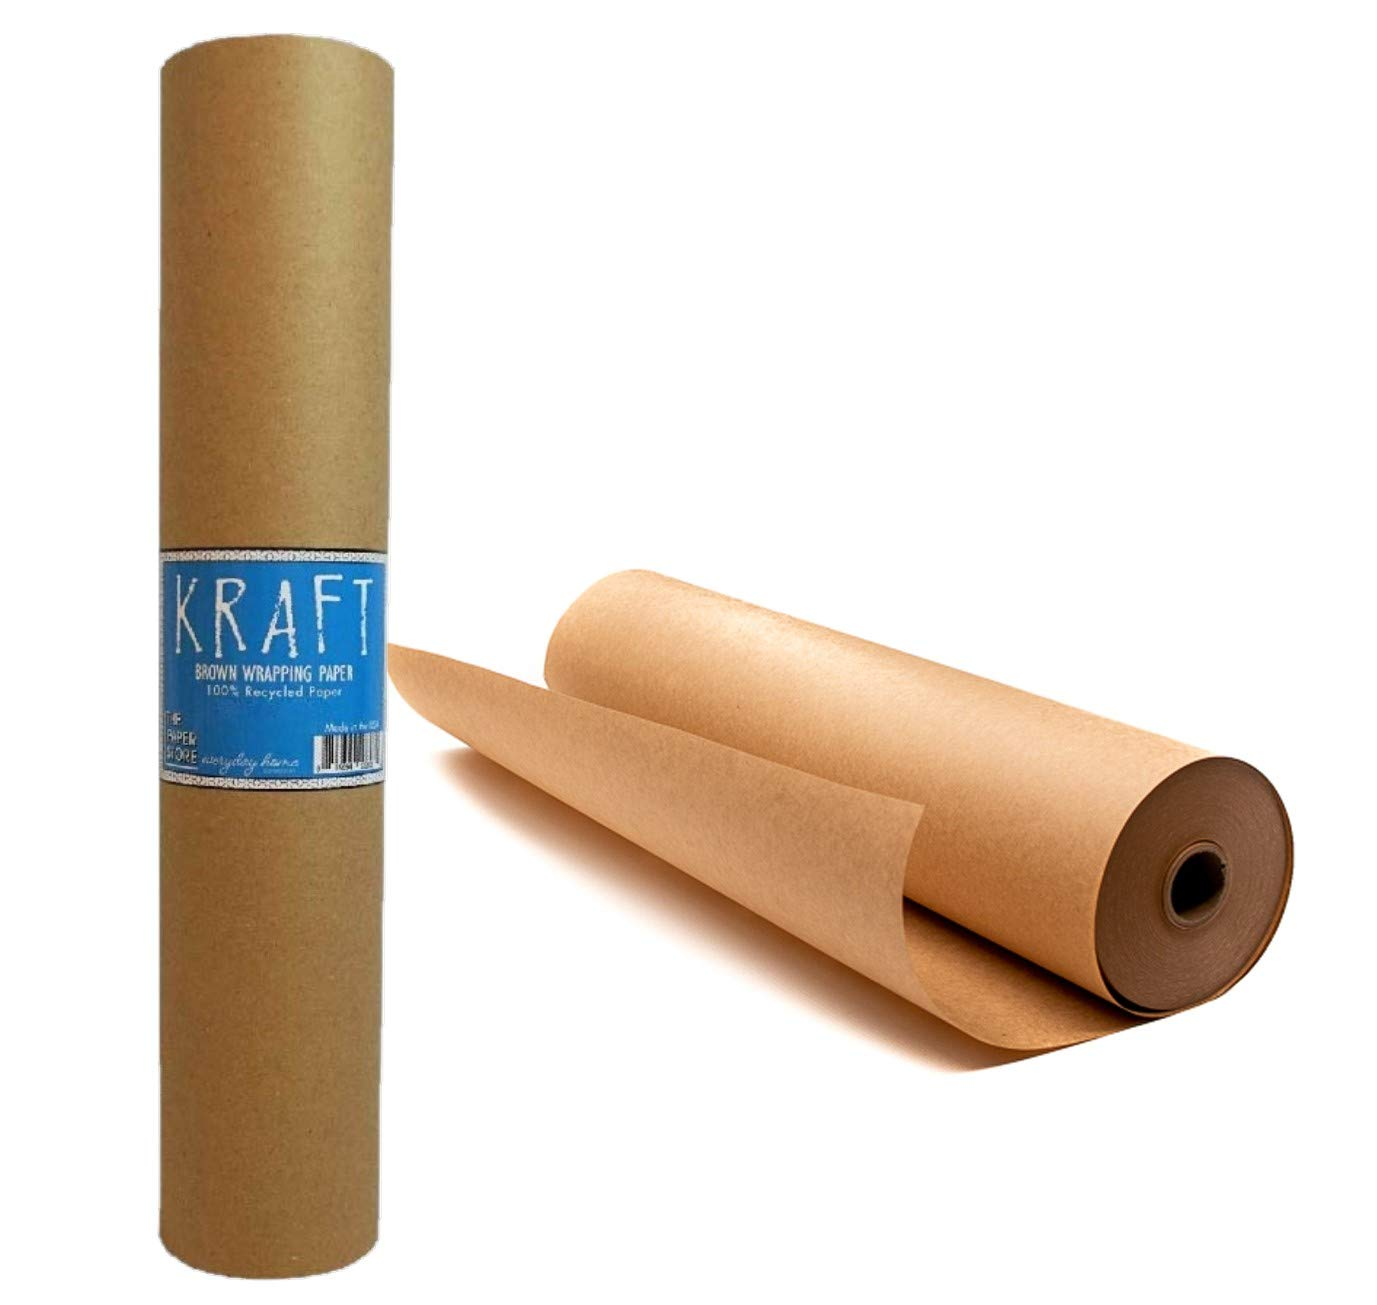 Kraft Brown Wrapping Paper Roll 48